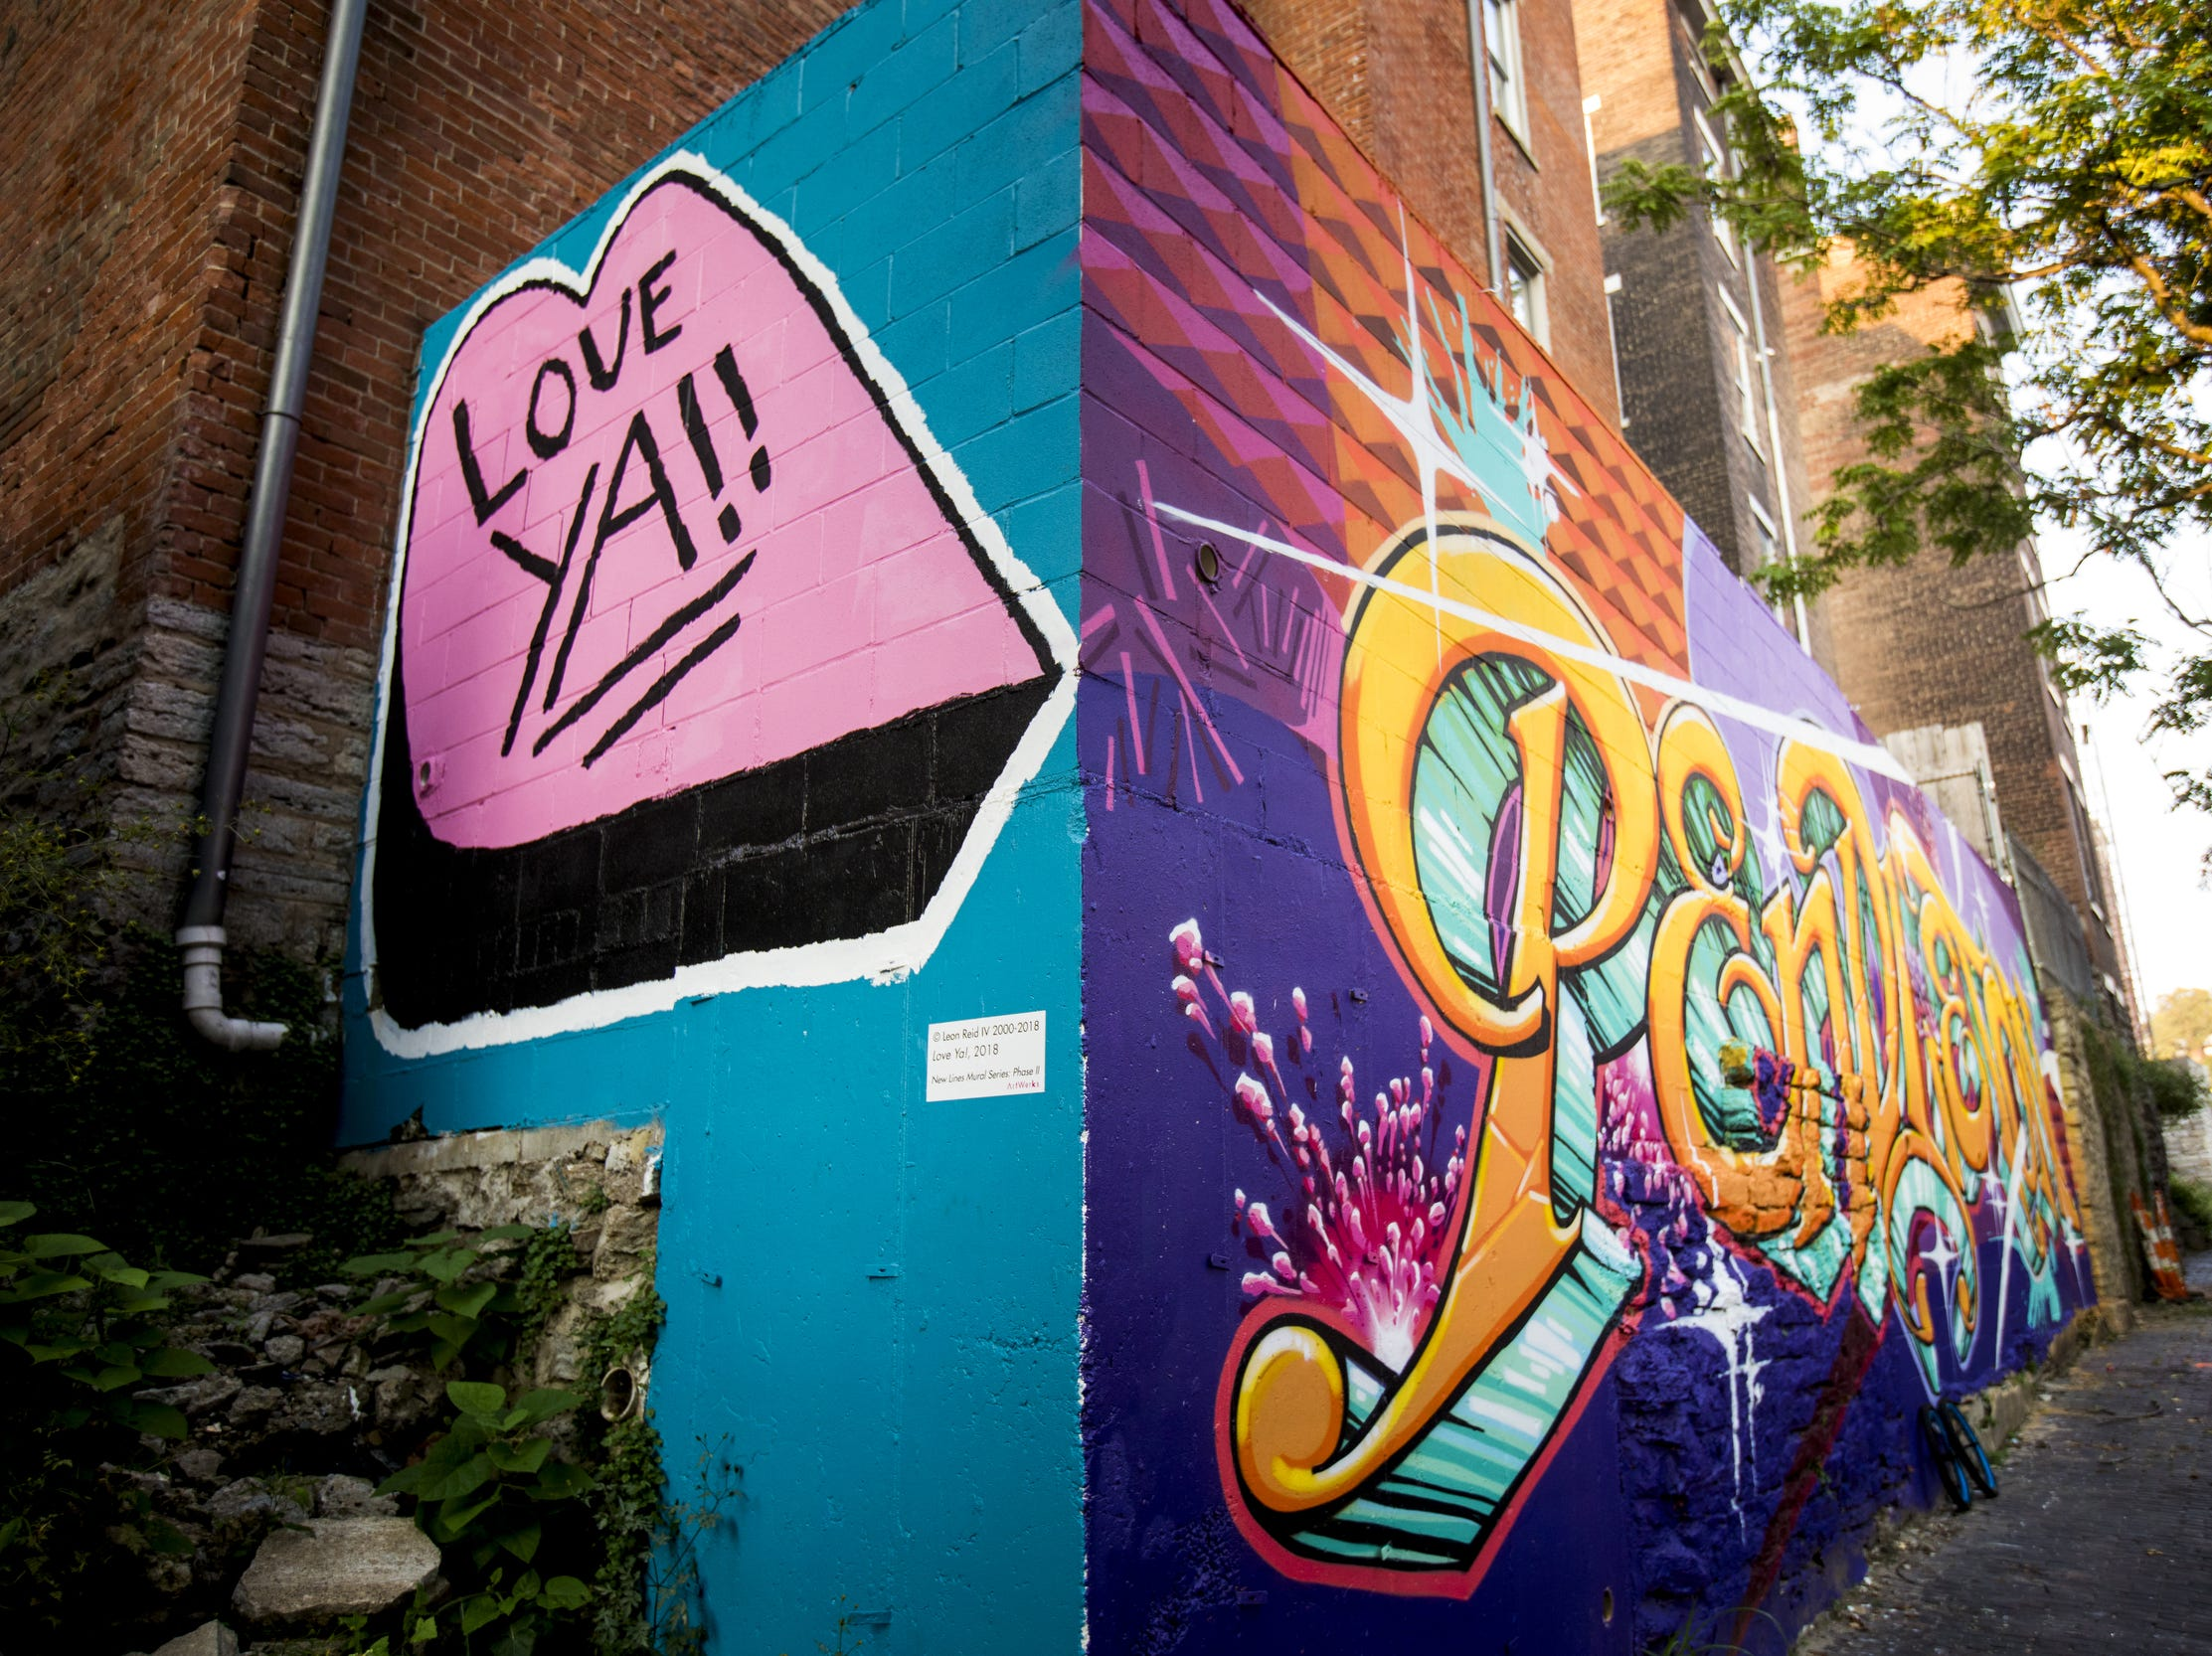 Wednesday, September 19, 2018: ÒLove Ya!!Ó designed by Leon Reid IV is featured in Bolivar Alley in Pendleton as part of New Lines Alleyway Murals: Phase II by ArtWorks.